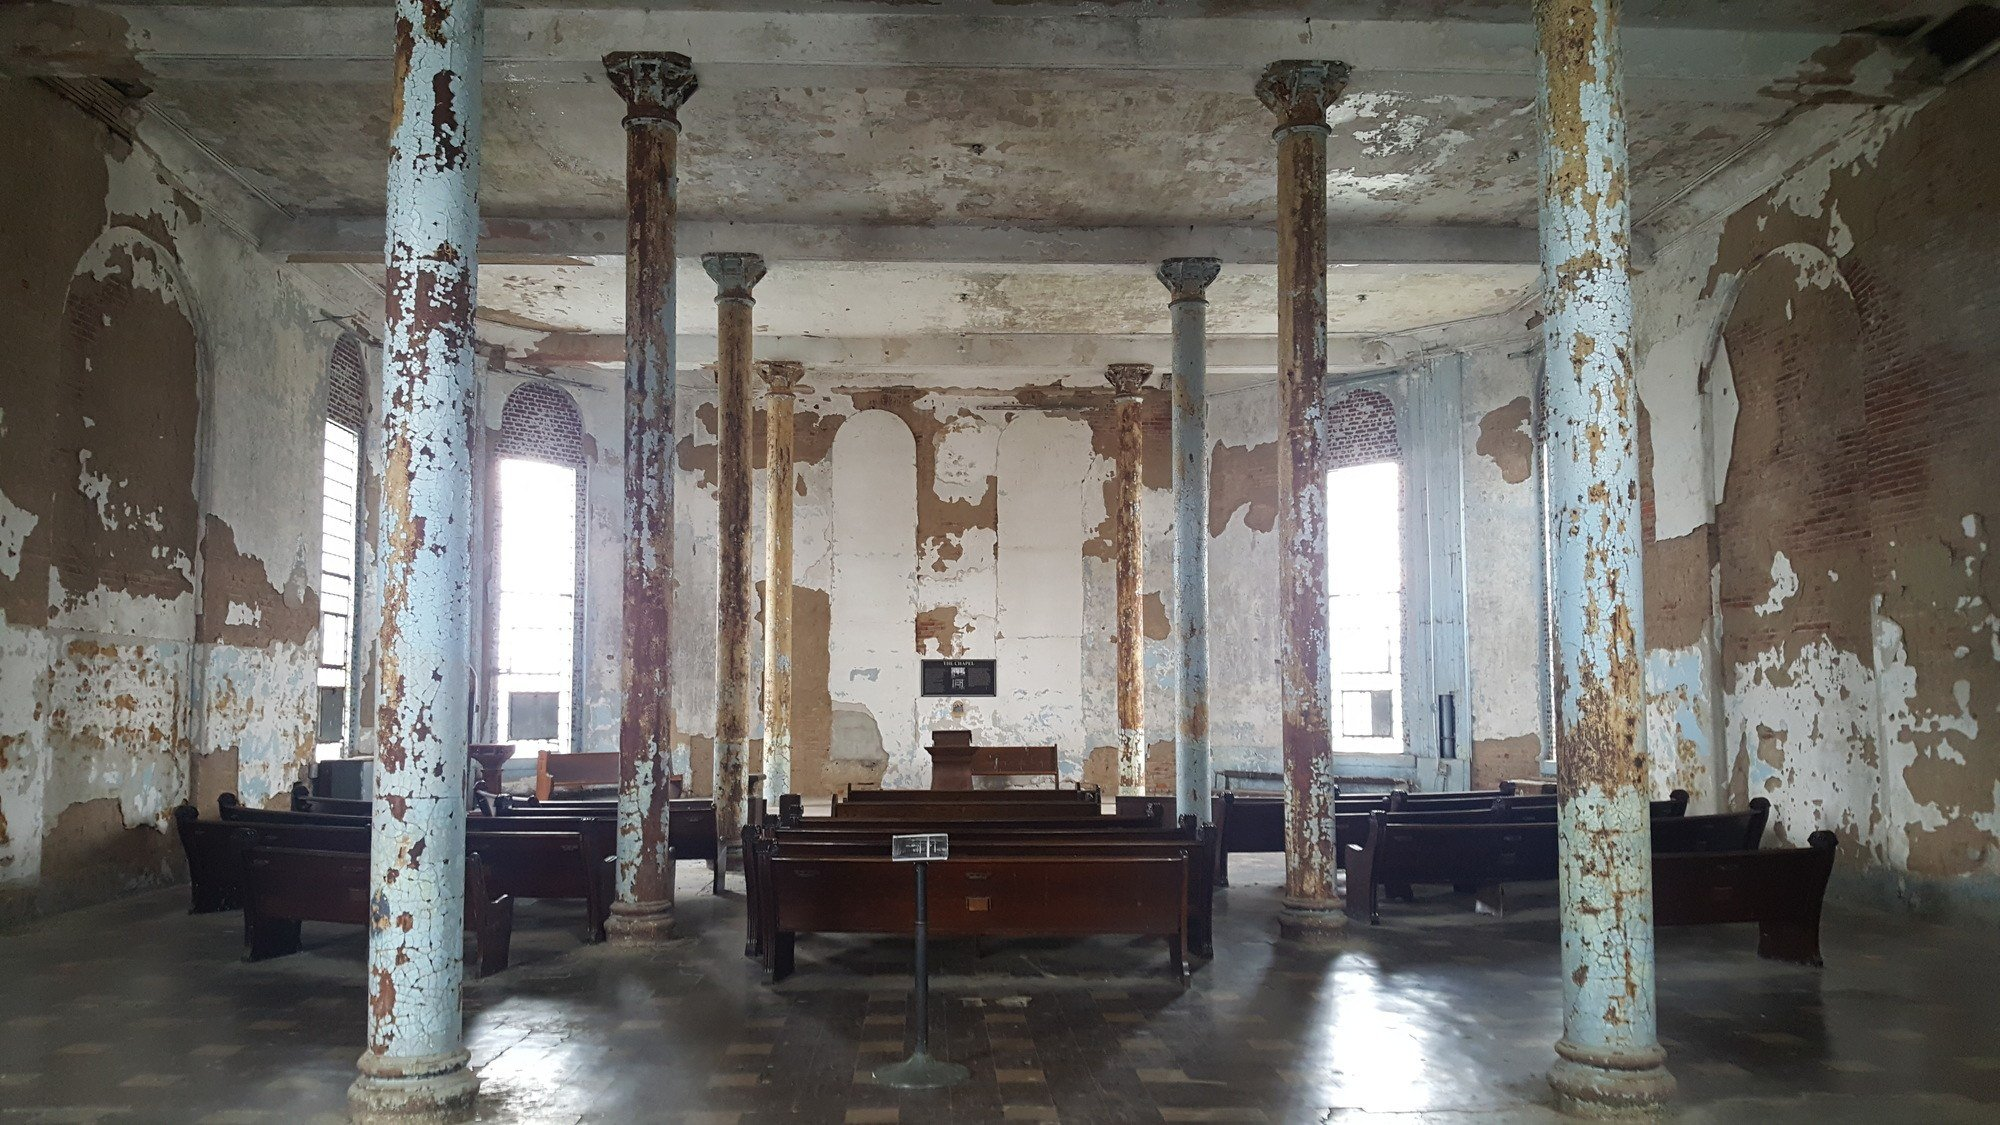 The chapel inside the Ohio State Reformatory